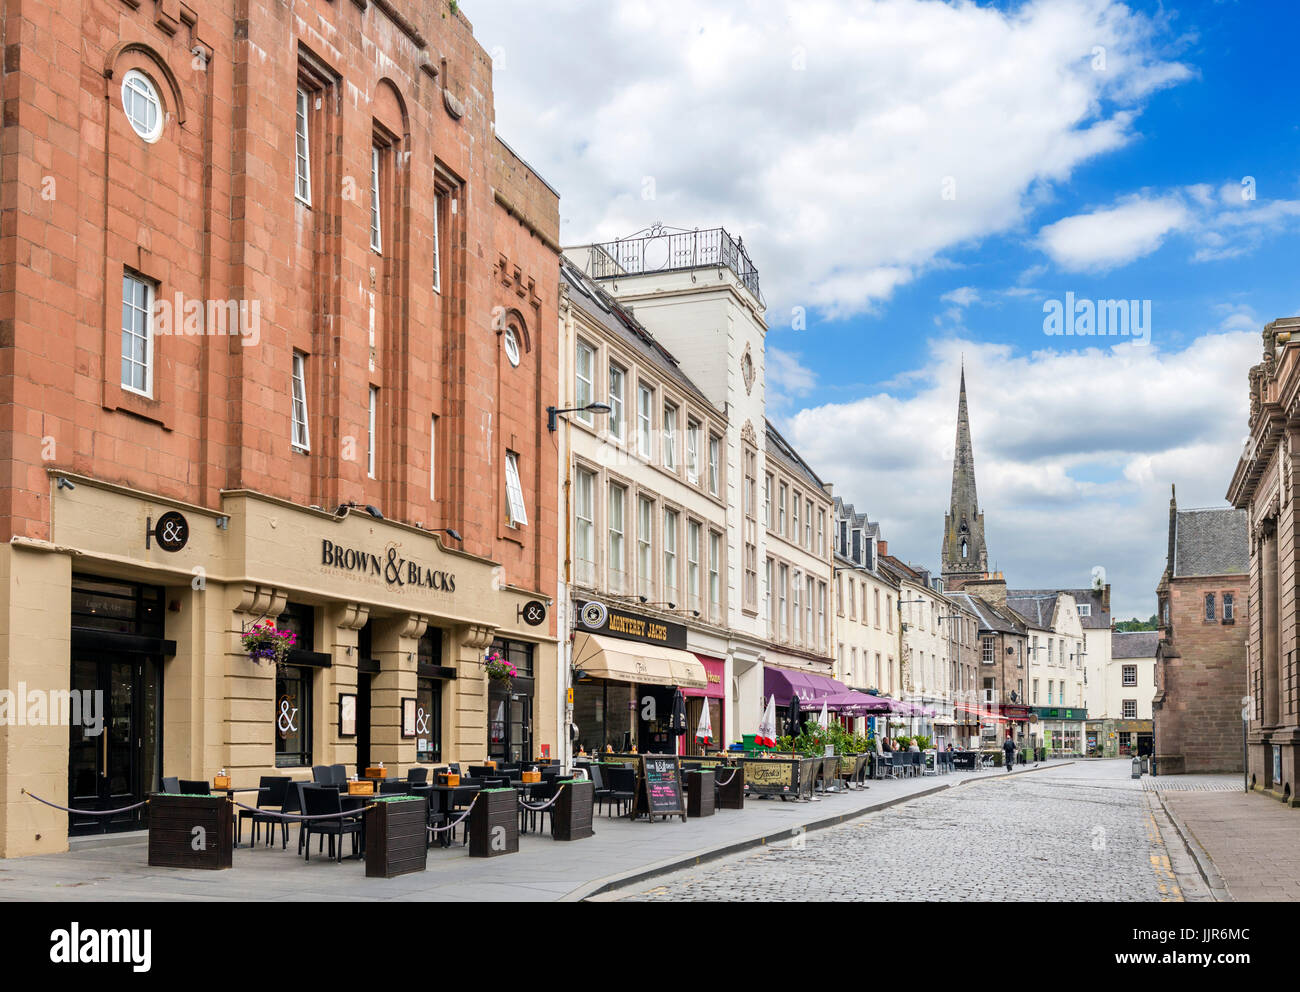 Bars and restaurants on St John's Place in the town centre, Perth, Scotland, UK - Stock Image